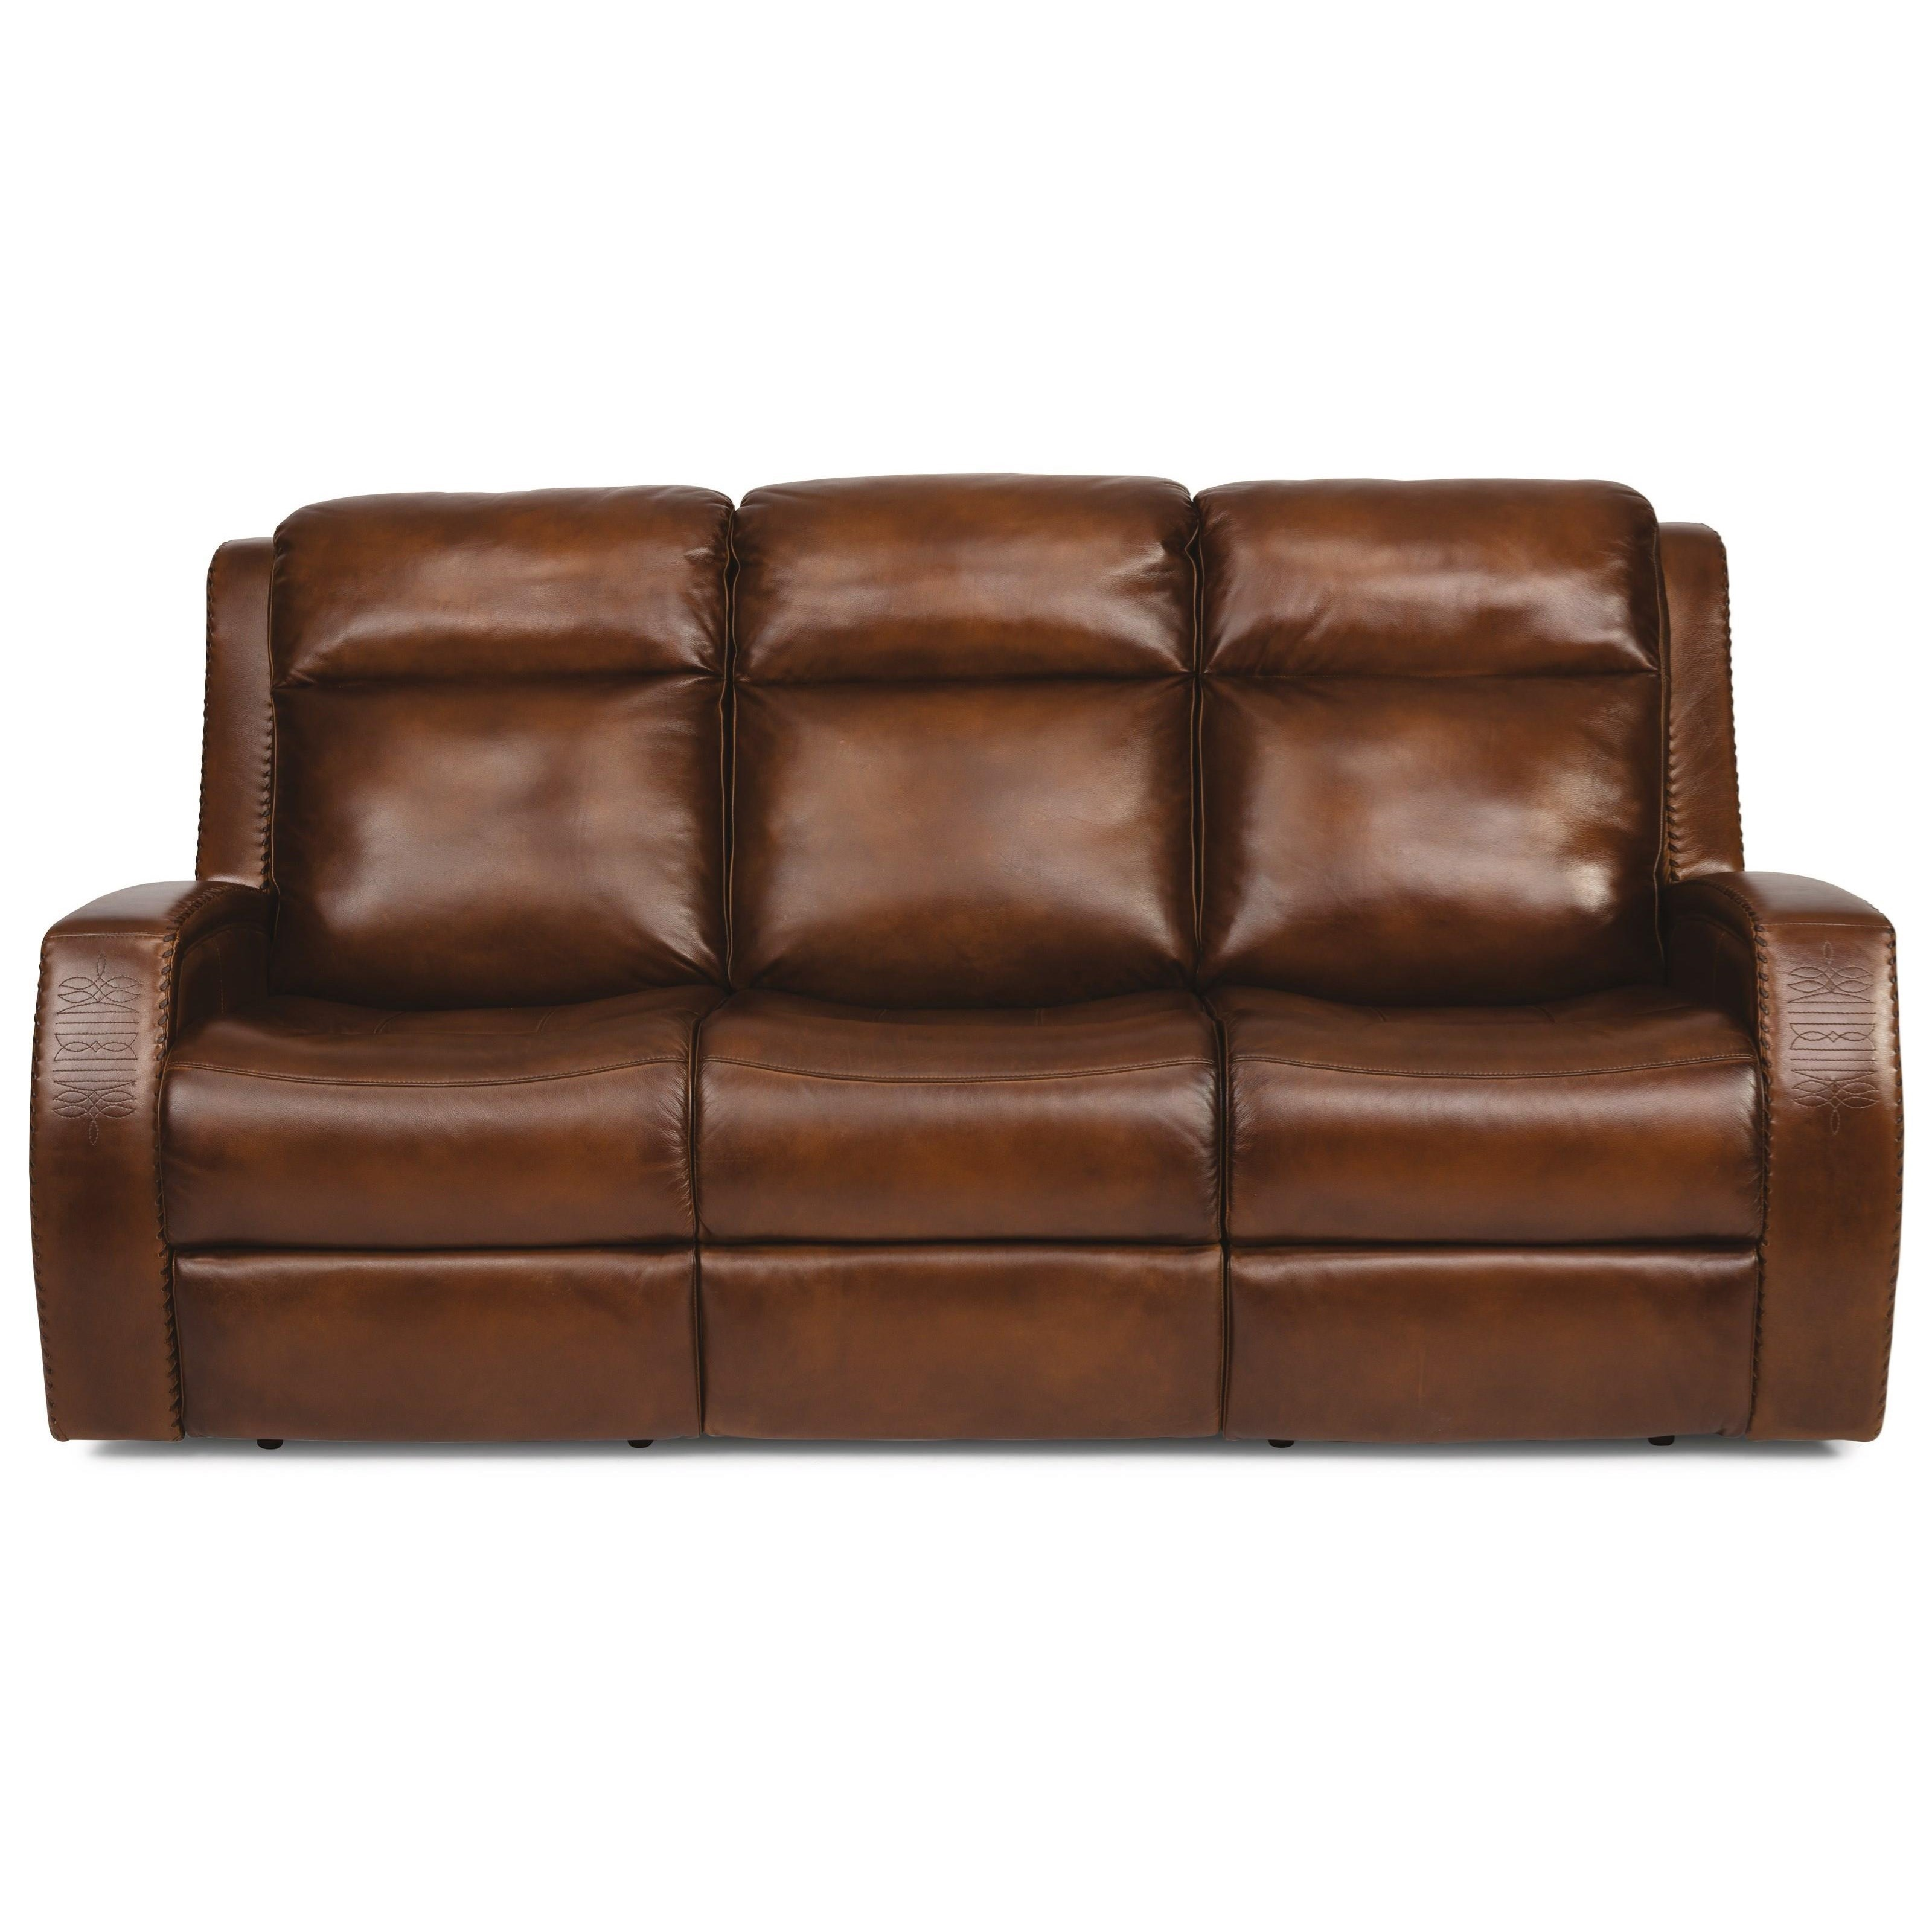 Latitudes - Mustang Power Reclining Sofa w/ Pwr Headrests by Flexsteel at Miller Waldrop Furniture and Decor